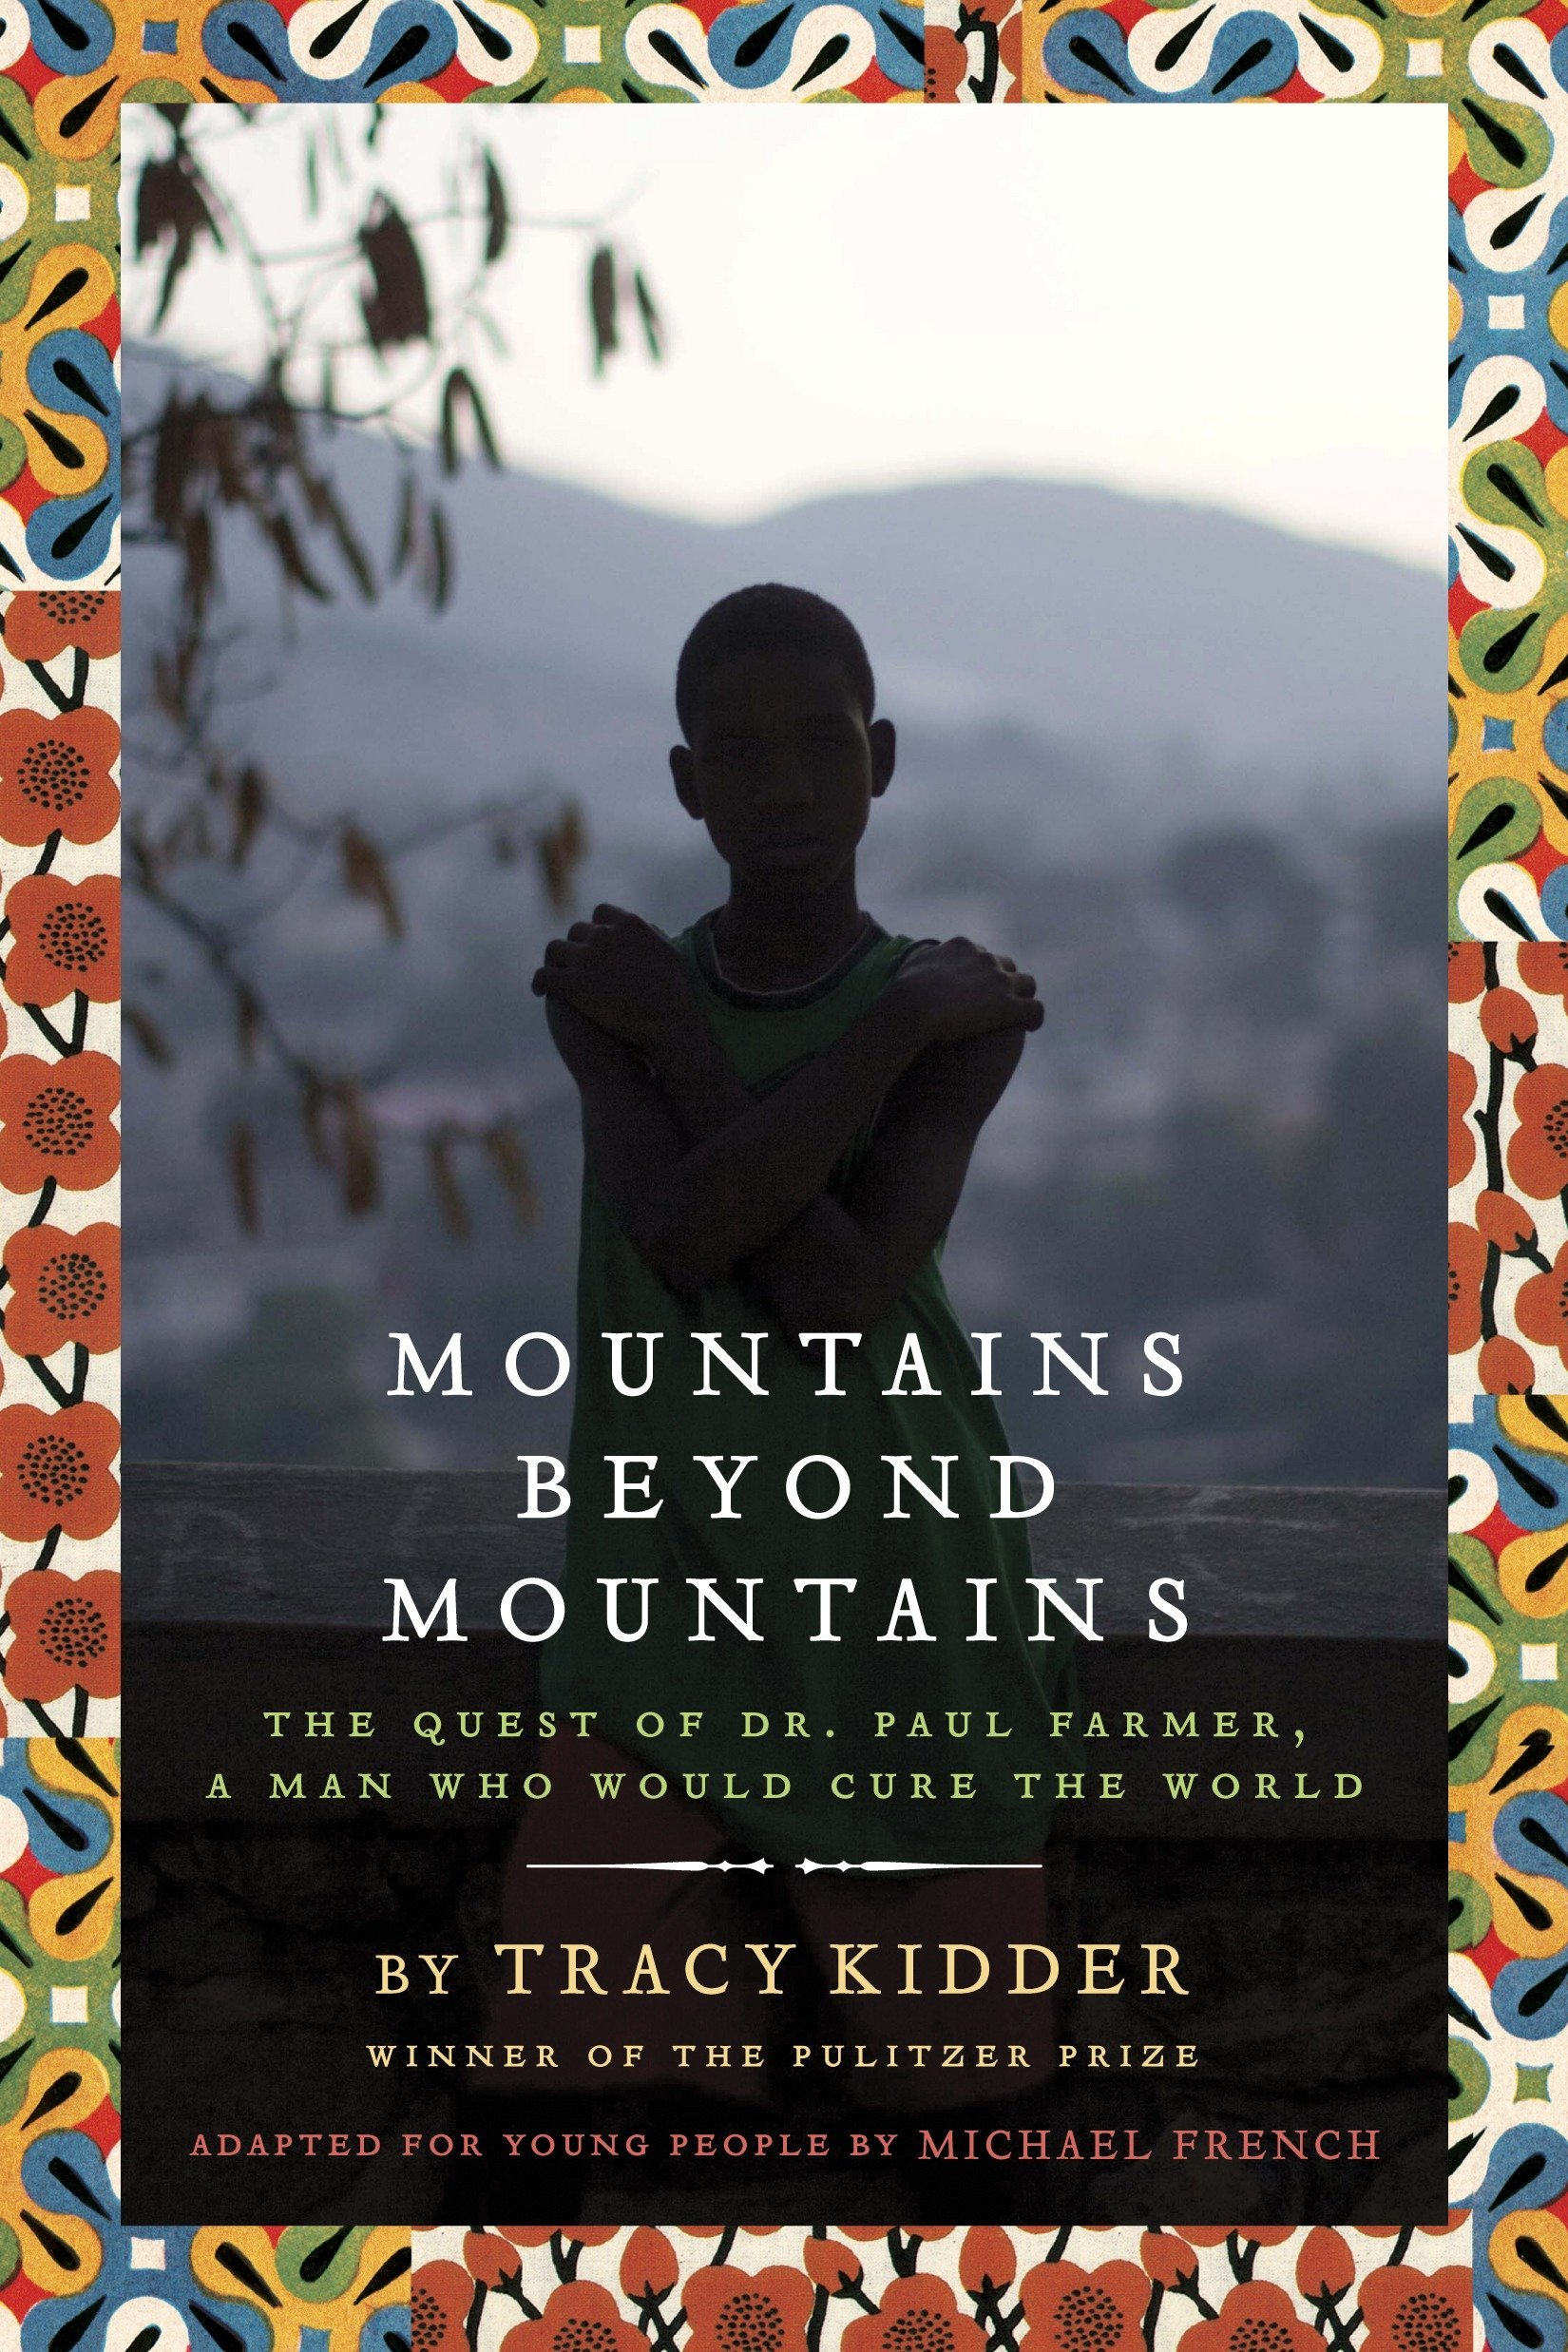 Mountains Beyond Mountains  Adapted For Young People   The Quest Of Dr. Paul Farmer A Man Who Would Cure The World